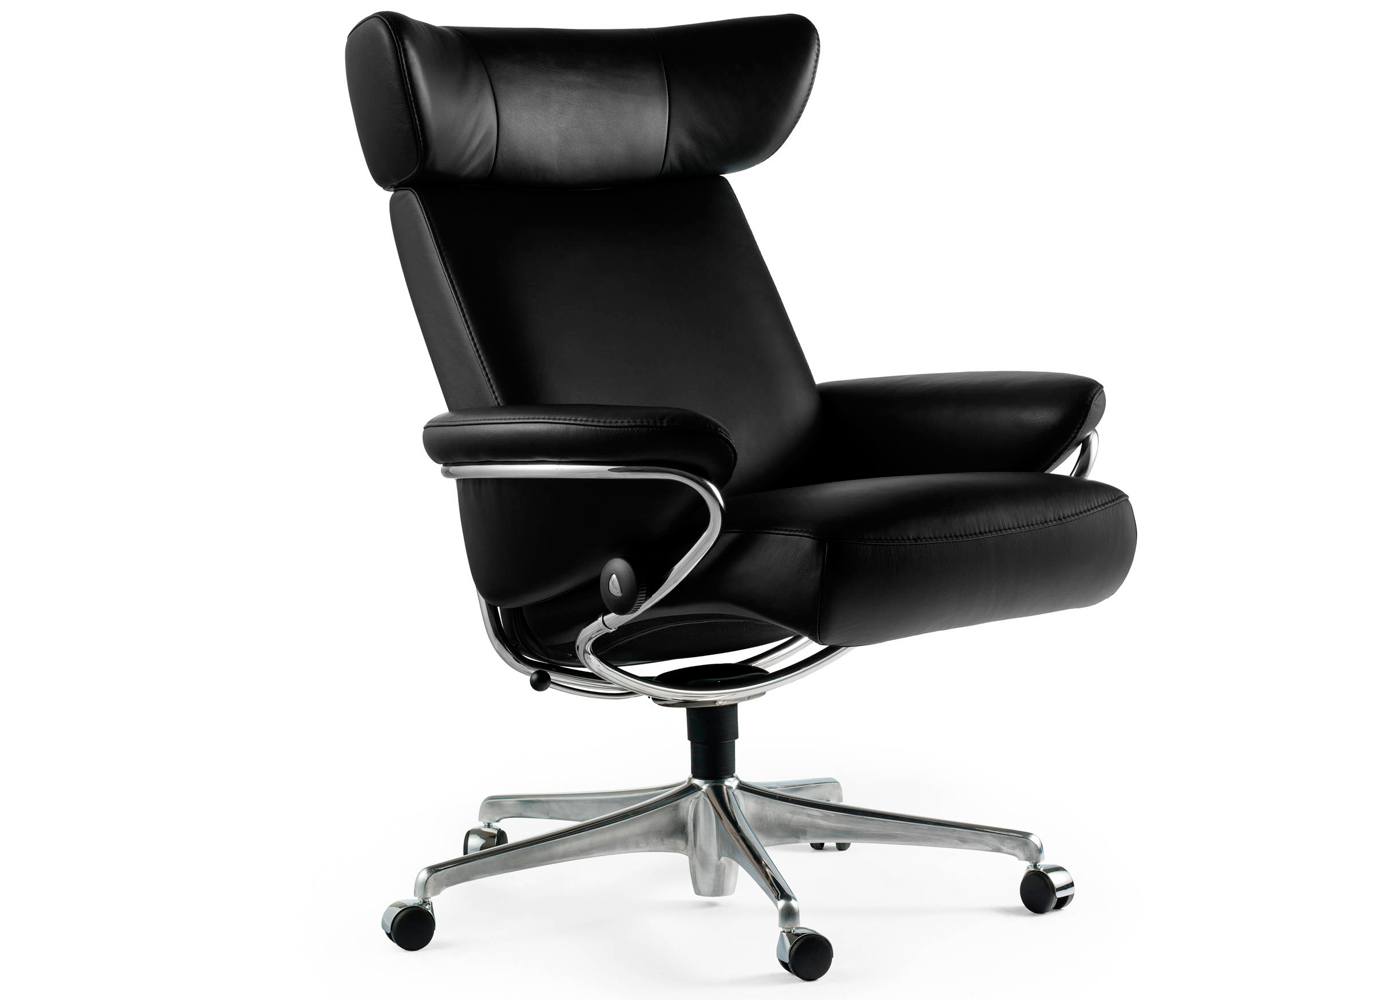 stressless office chairs uk chair weight capacity jazz midfurn furniture superstore